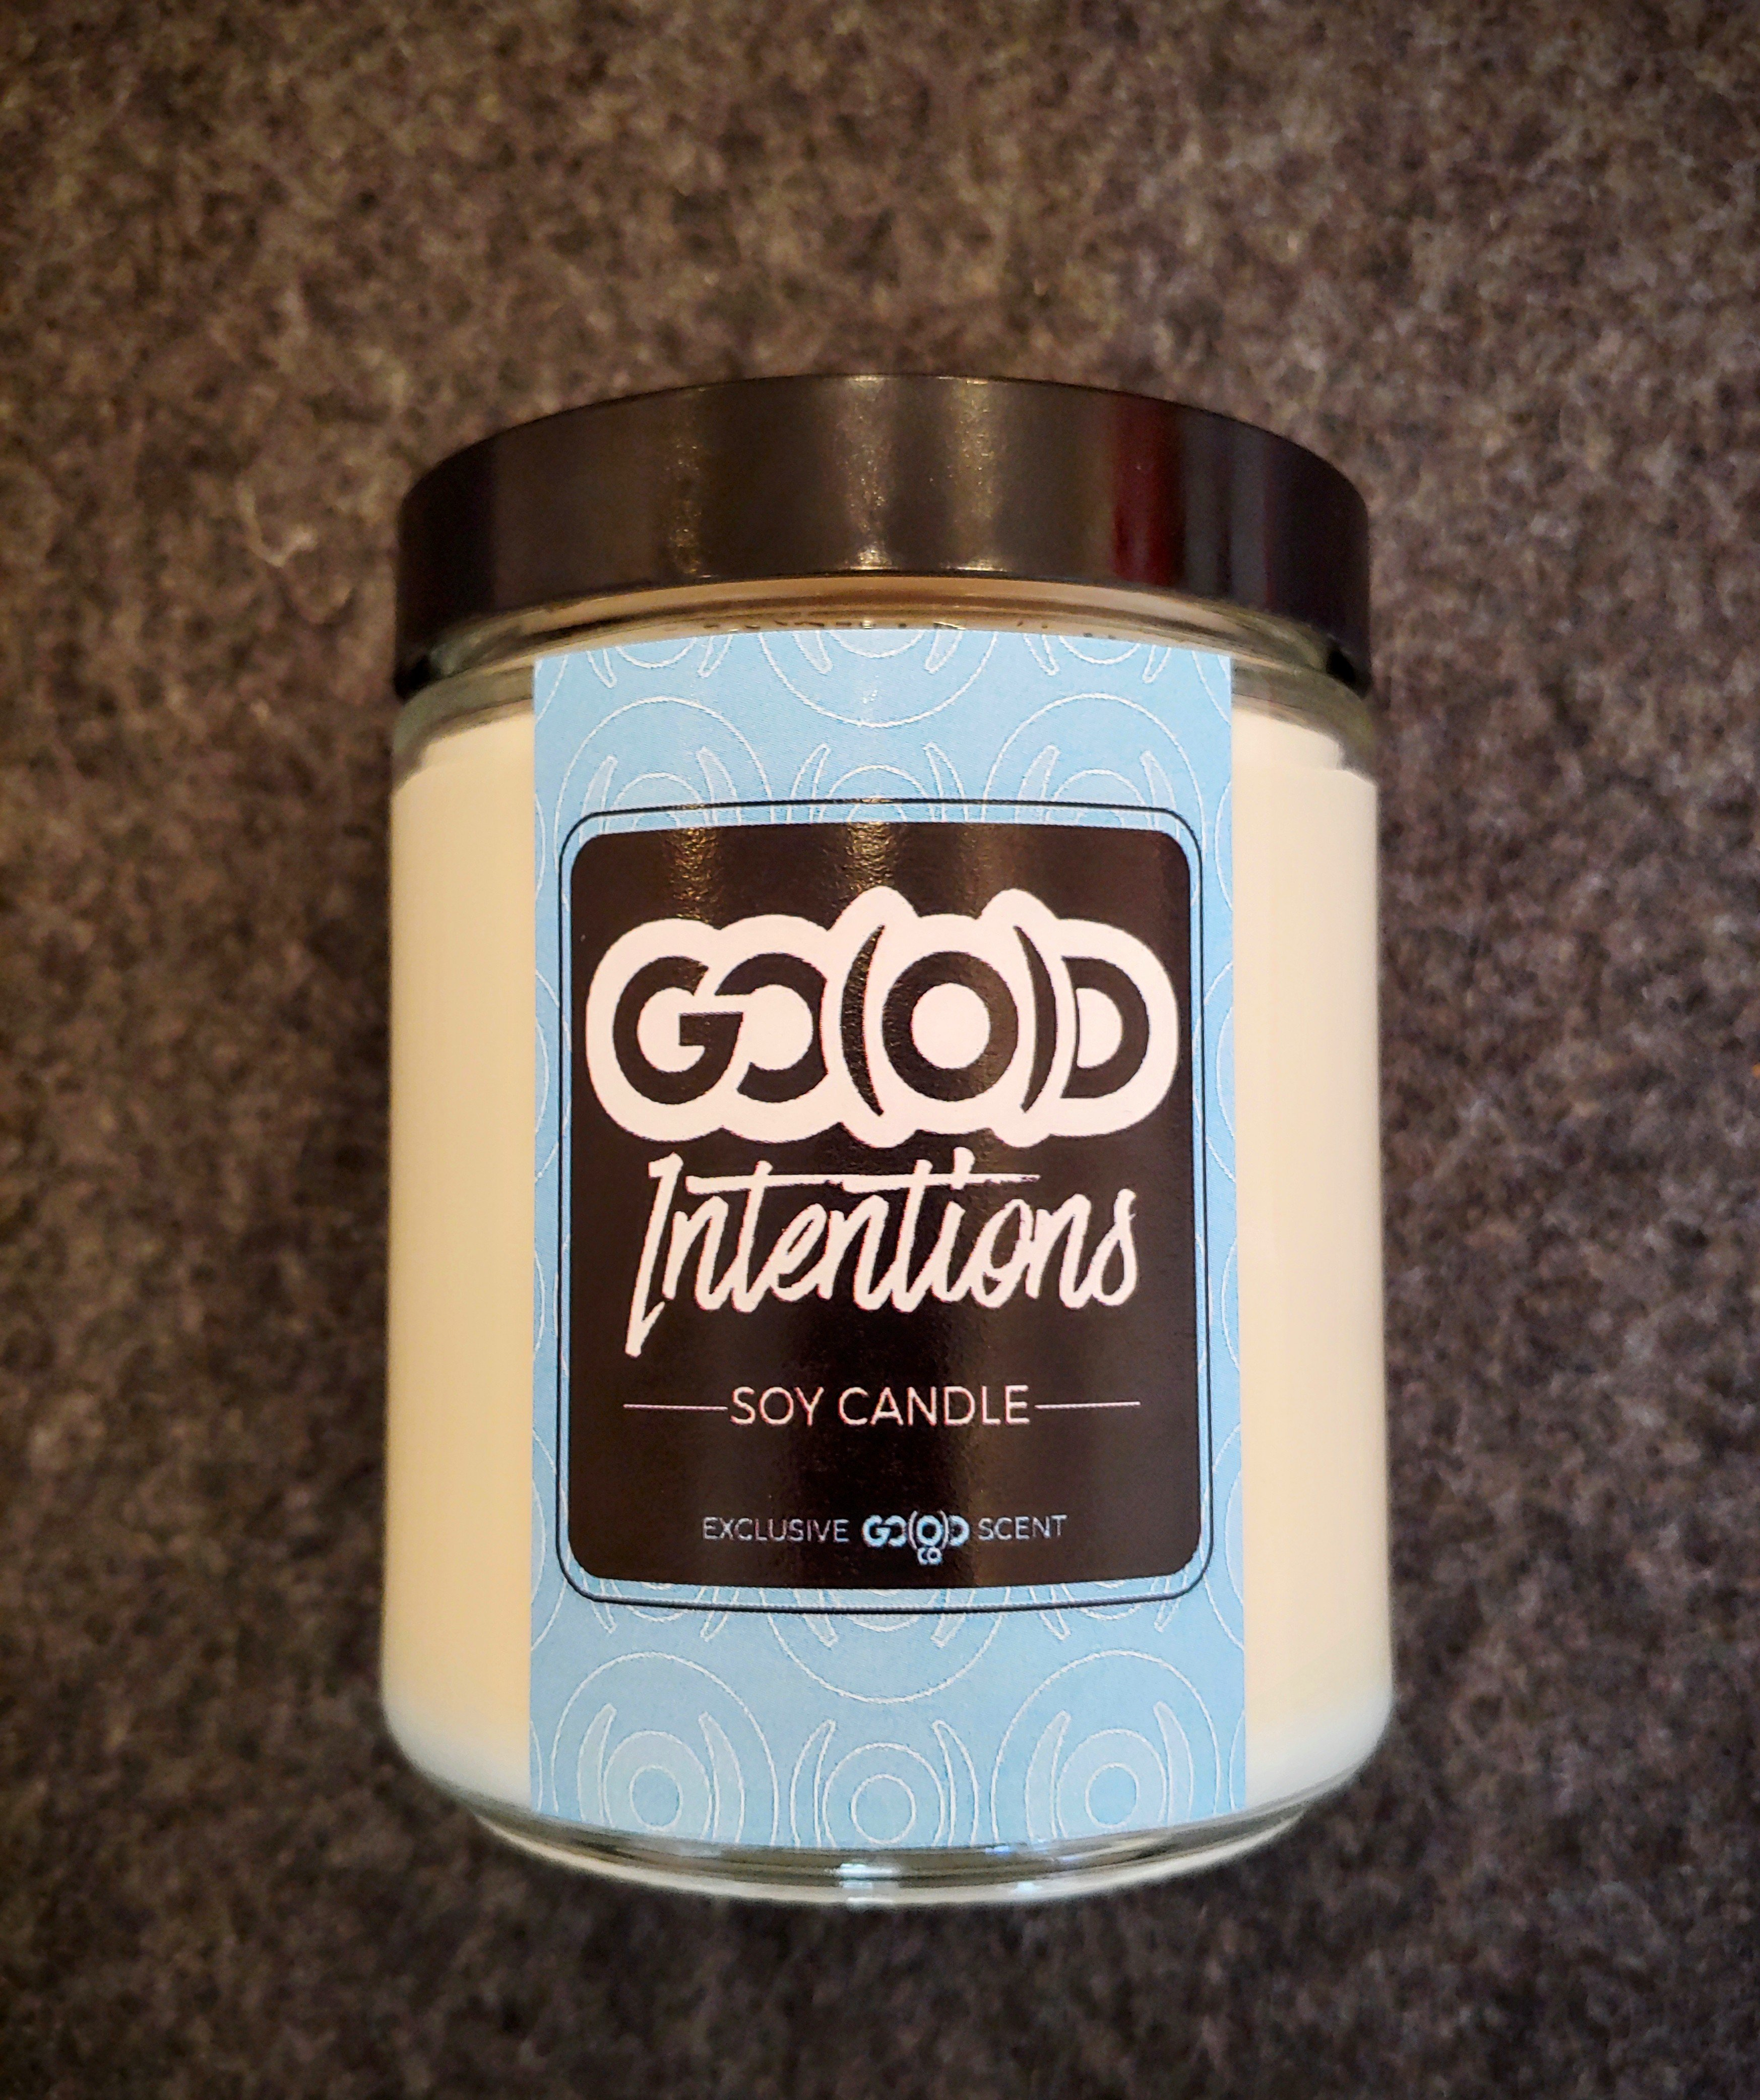 GO(O)D Intentions-8 ounce soy candle 00162